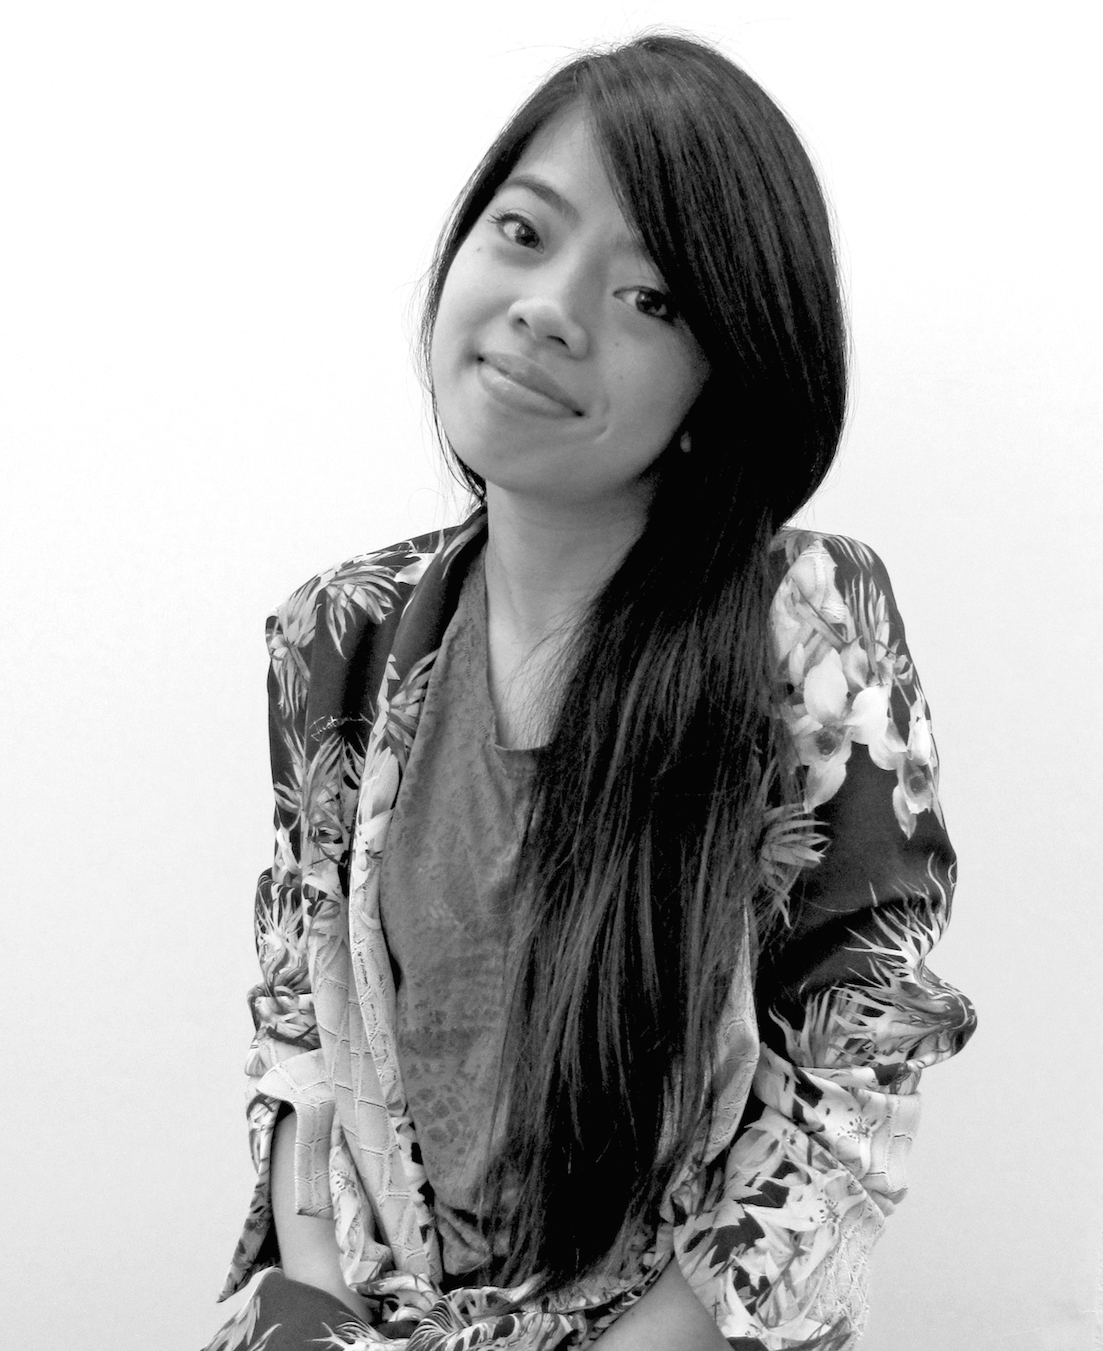 Academy of Art University B.F.A. womenswear student, Karen Dang